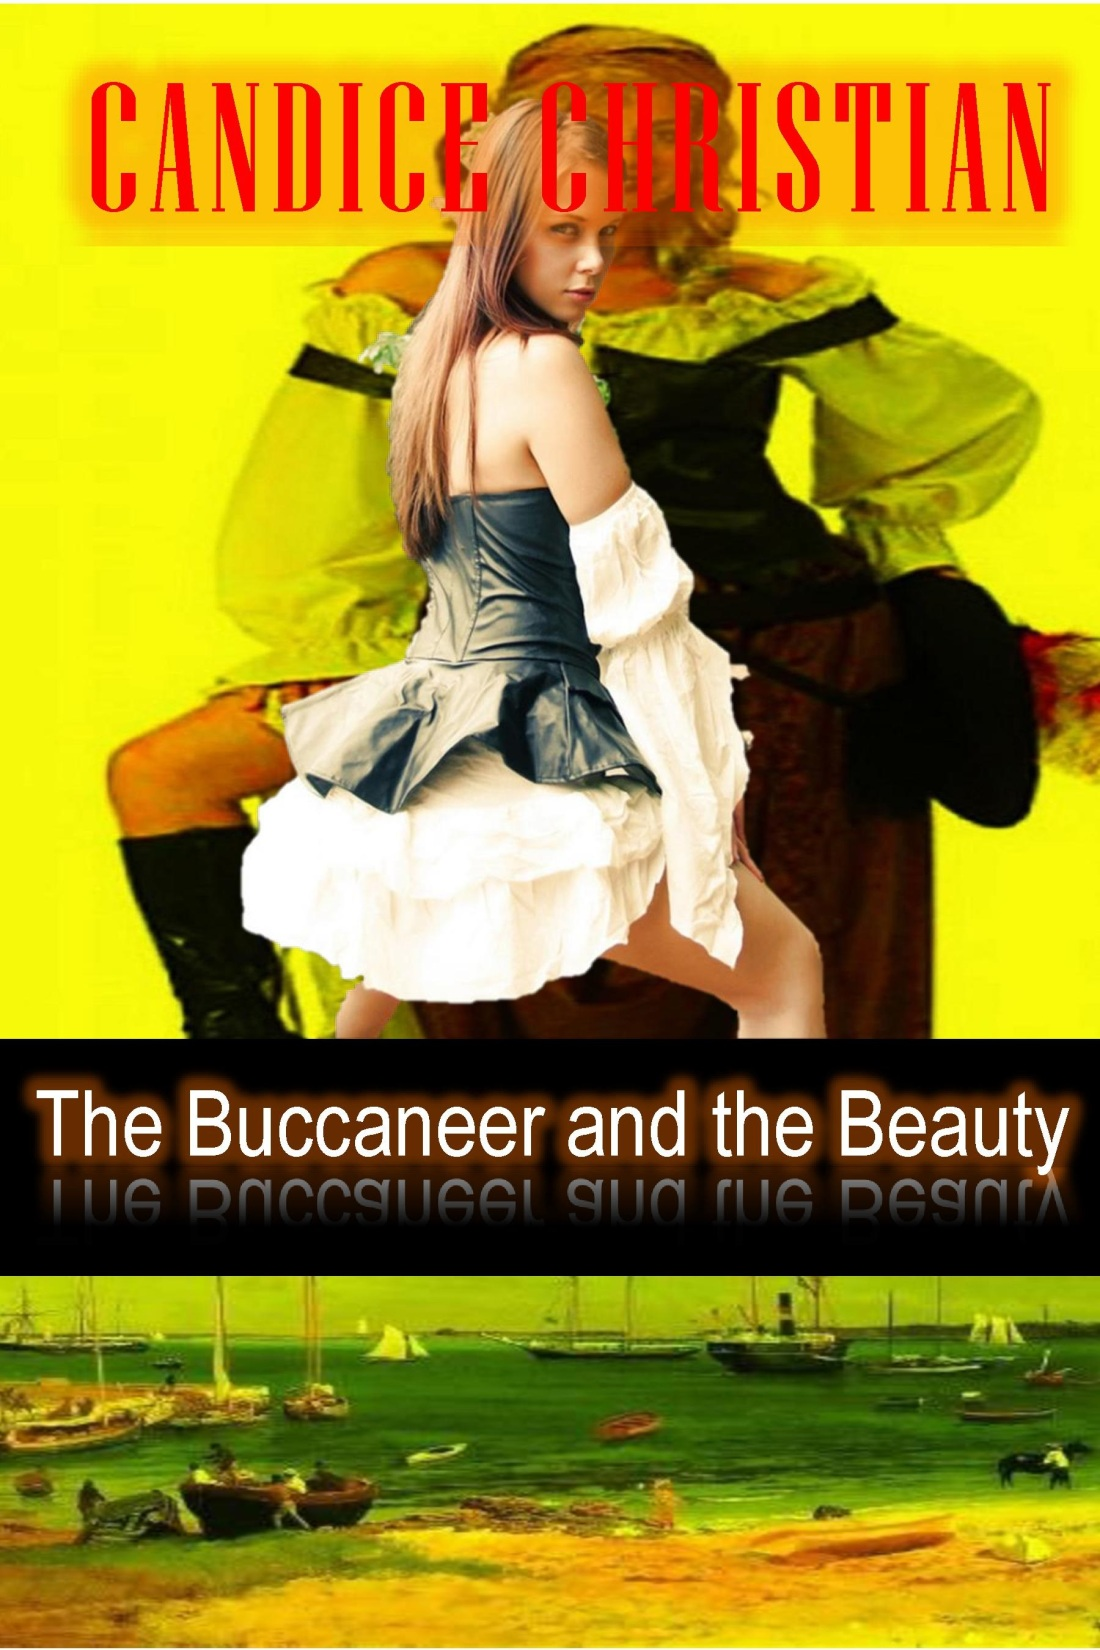 bUCCANEER AND THE BEAUTY COVER PDF